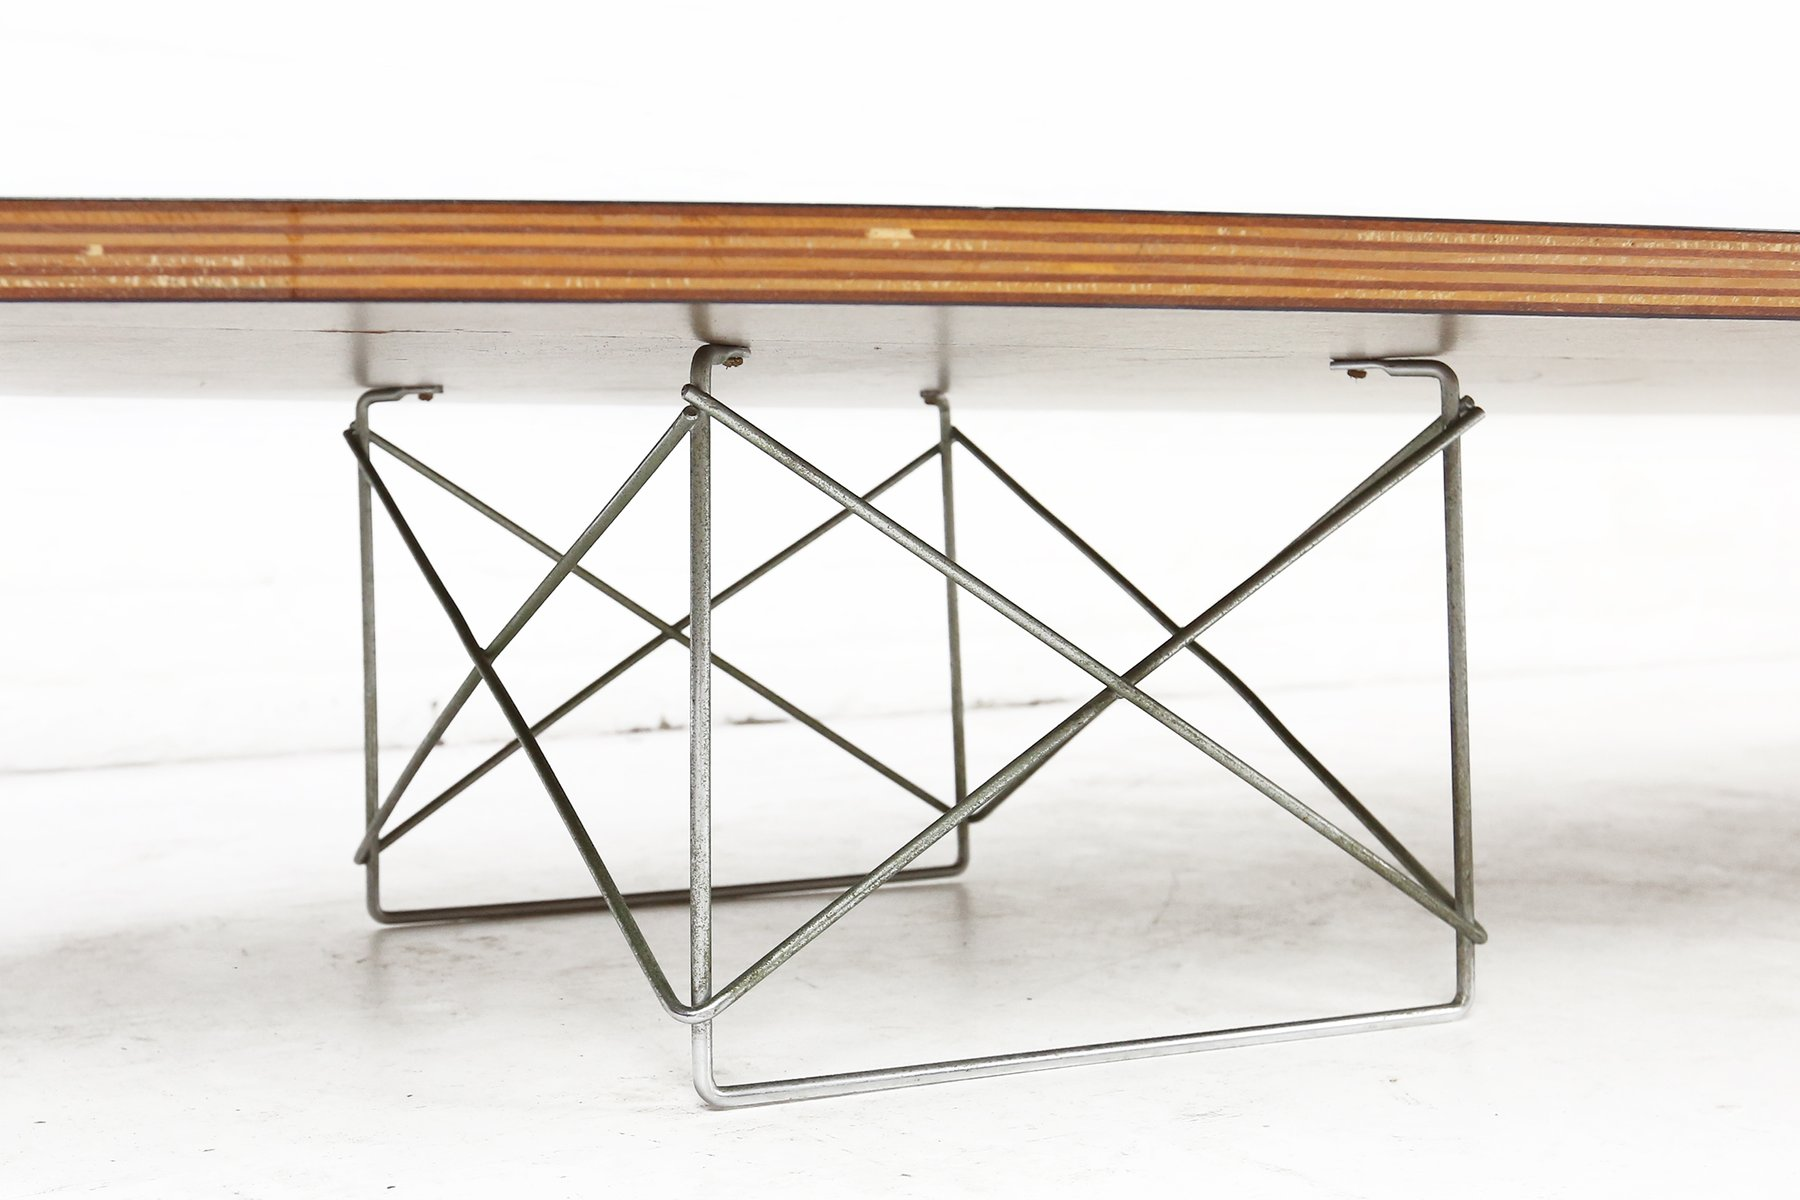 Eames Etr Elliptical Couchtisch Eames Coffee Table Beautiful The Incredible Eames Coffee Table